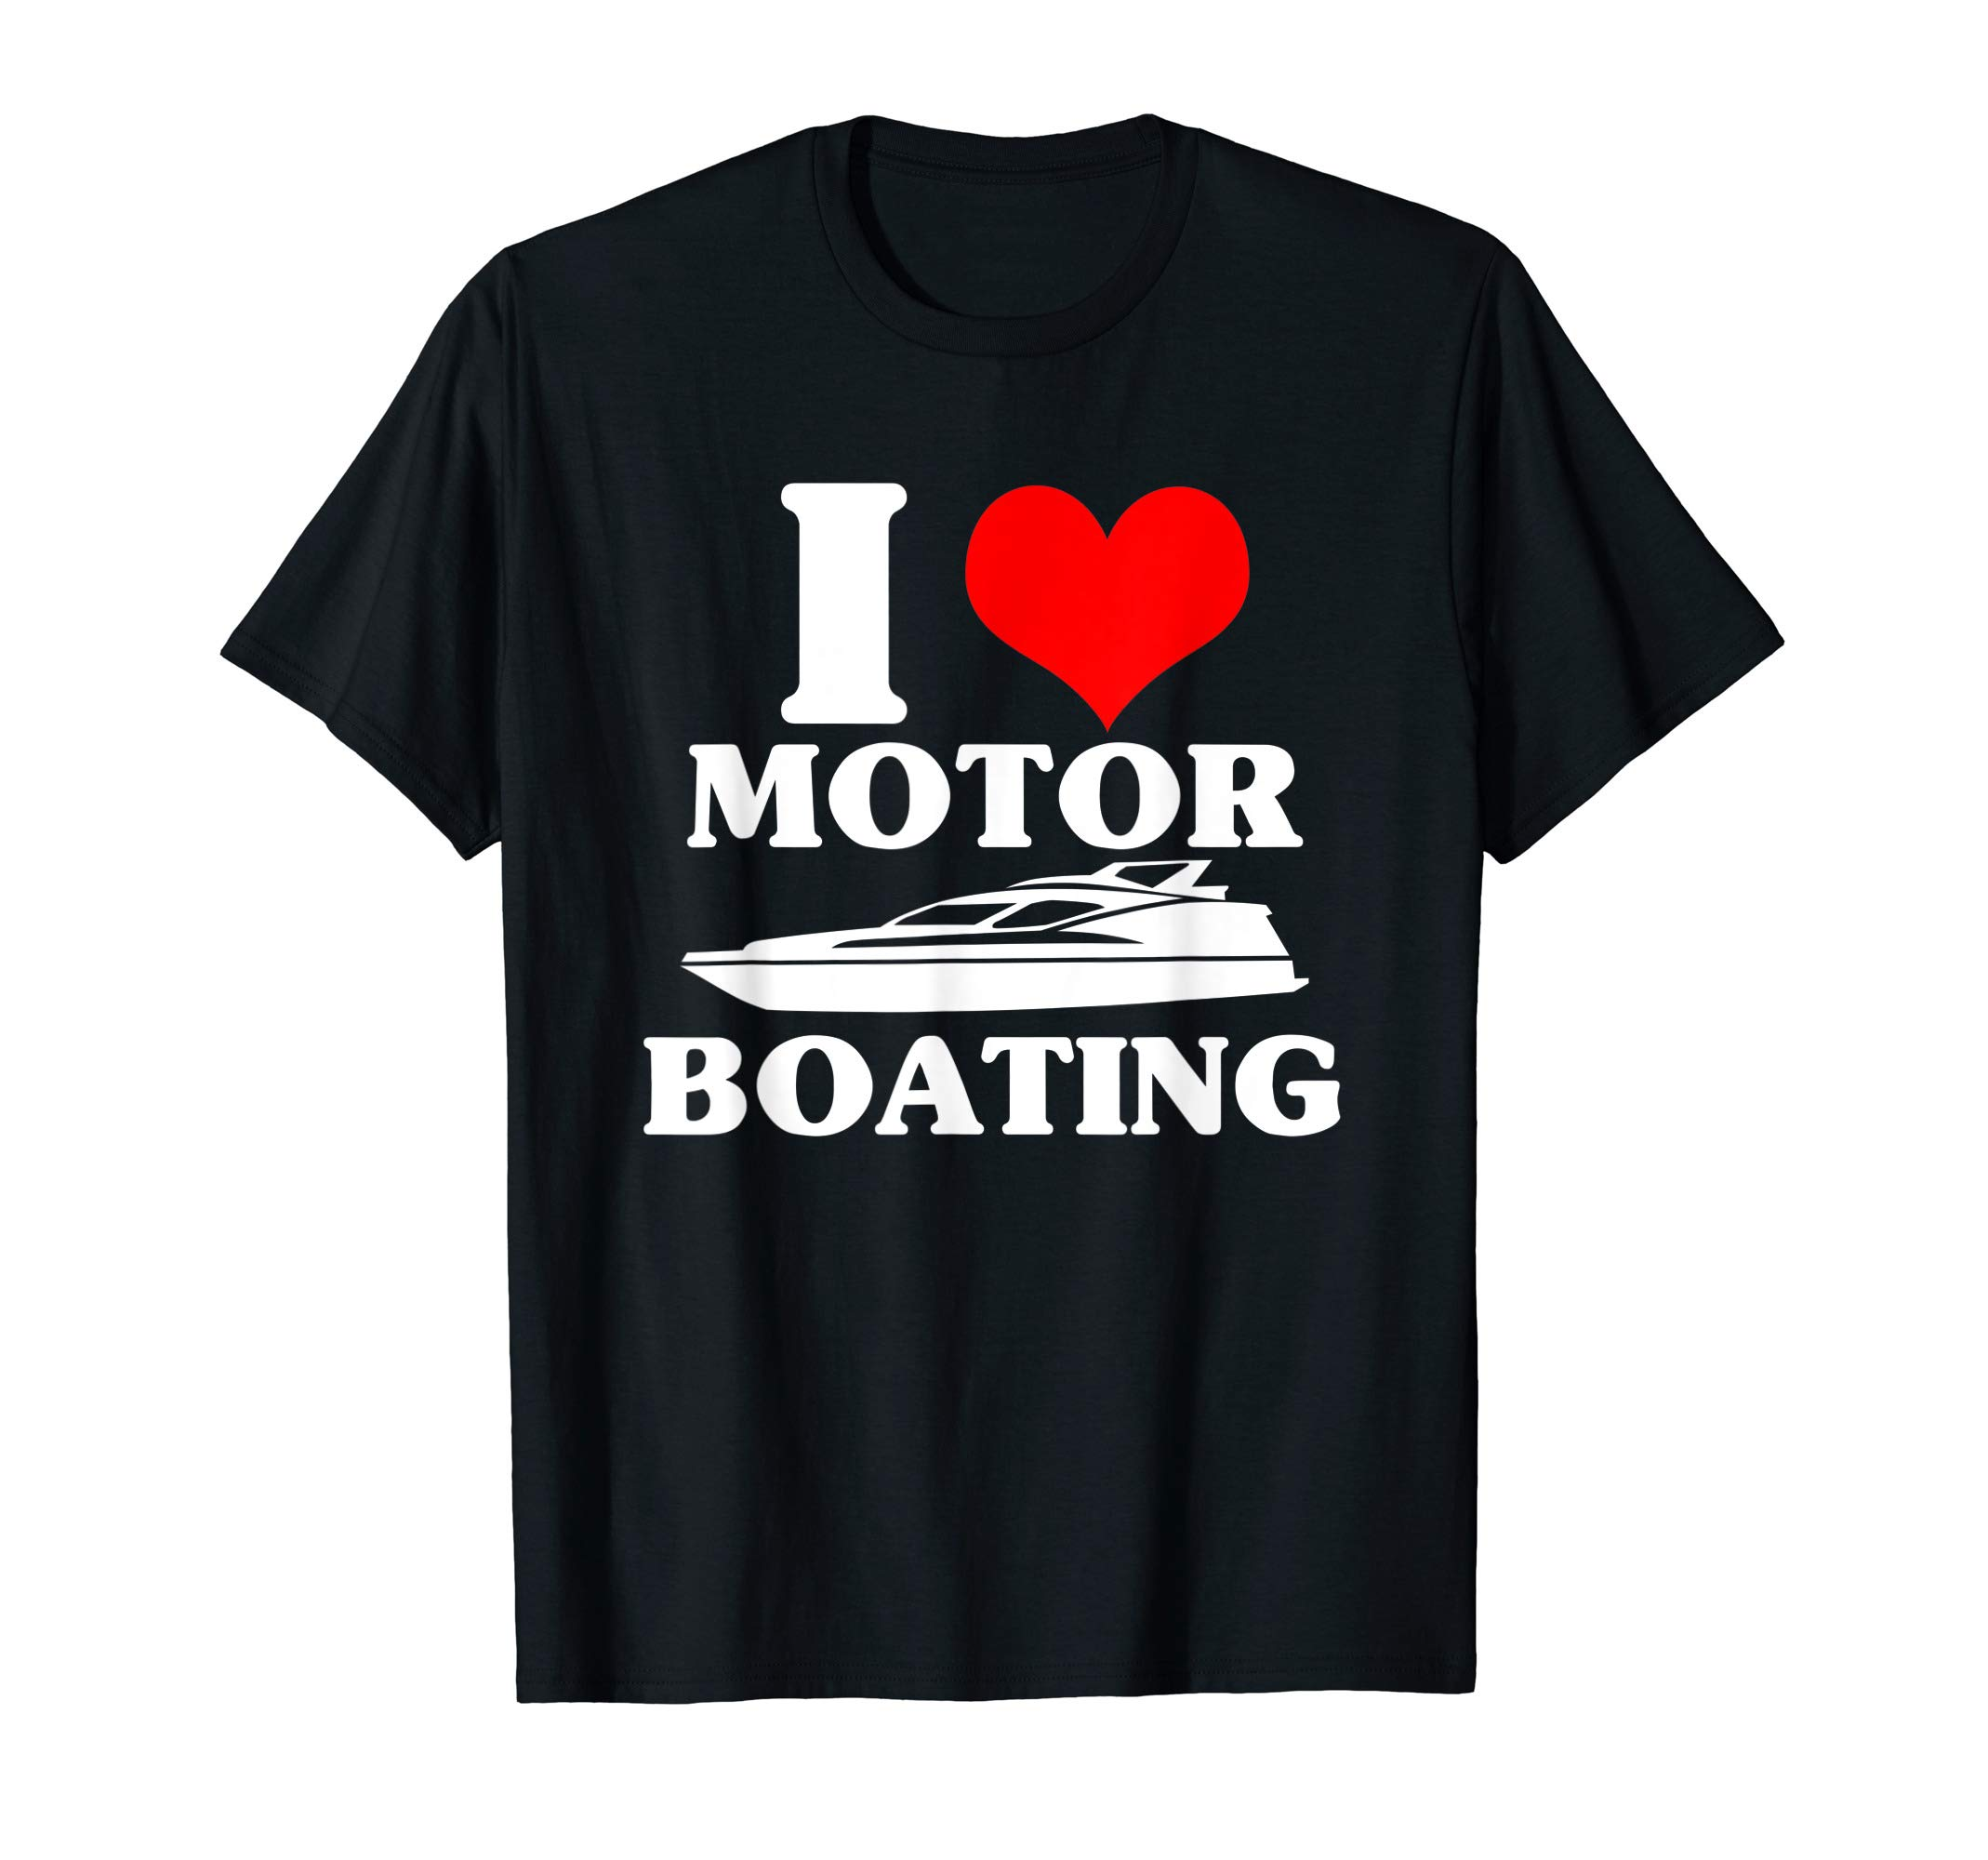 I Love Motor Boating Funny Boating T-Shirt For Boaters by Love Boating Shirts